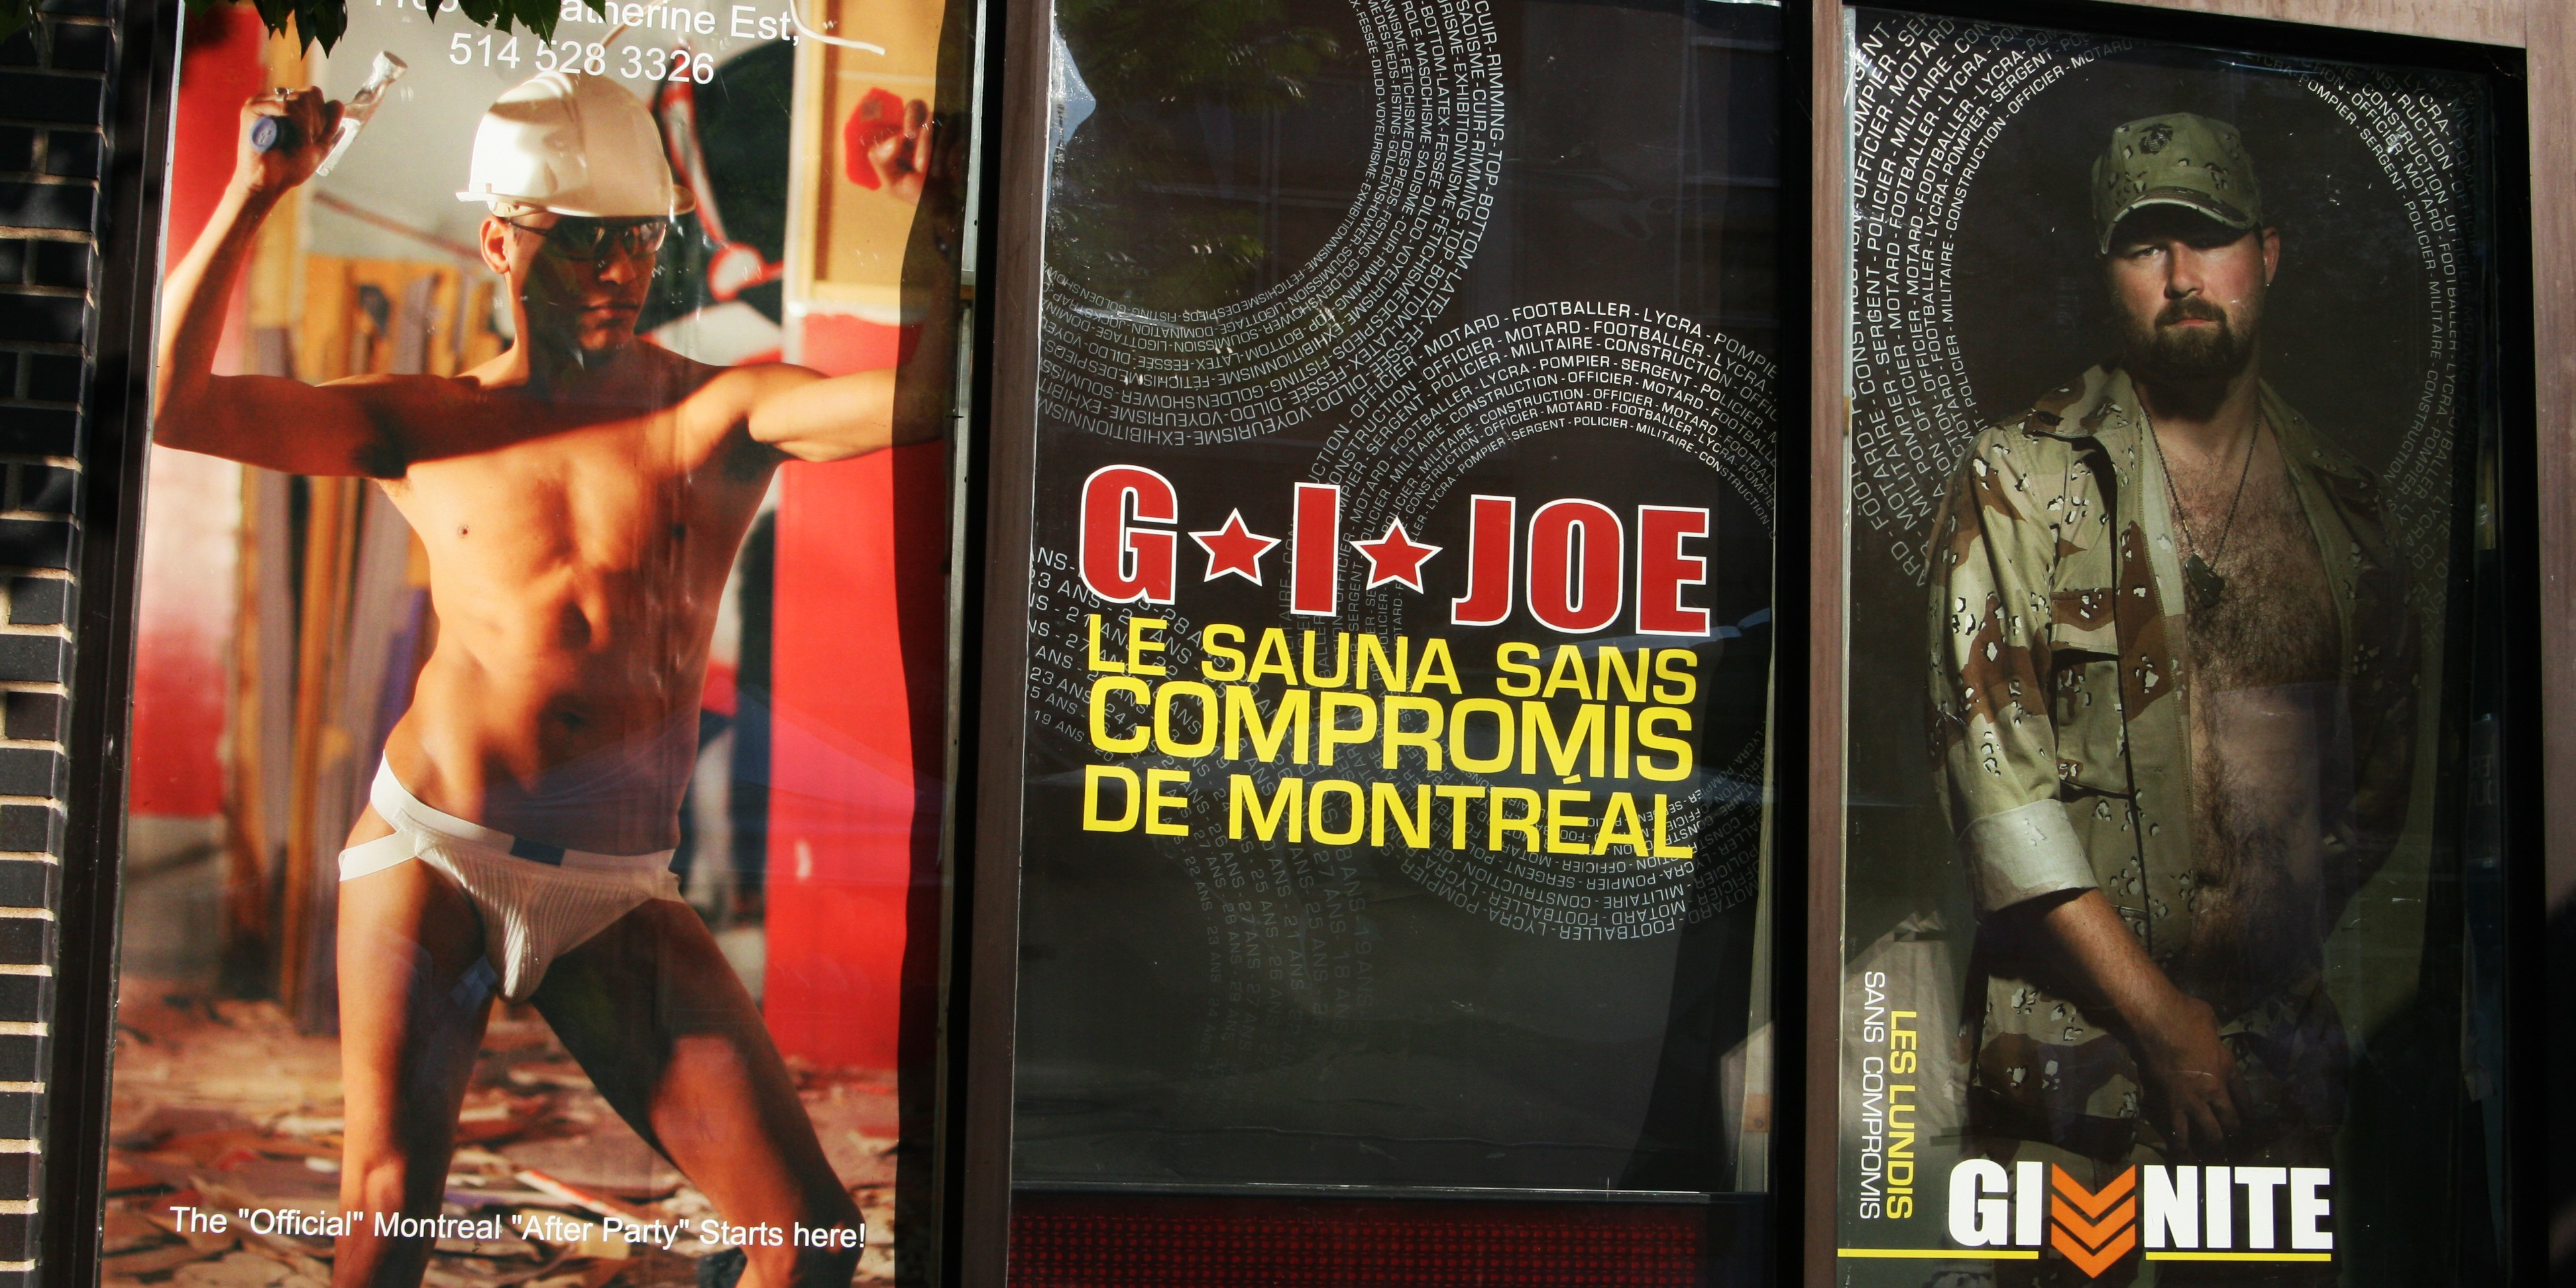 montreal sex clubs